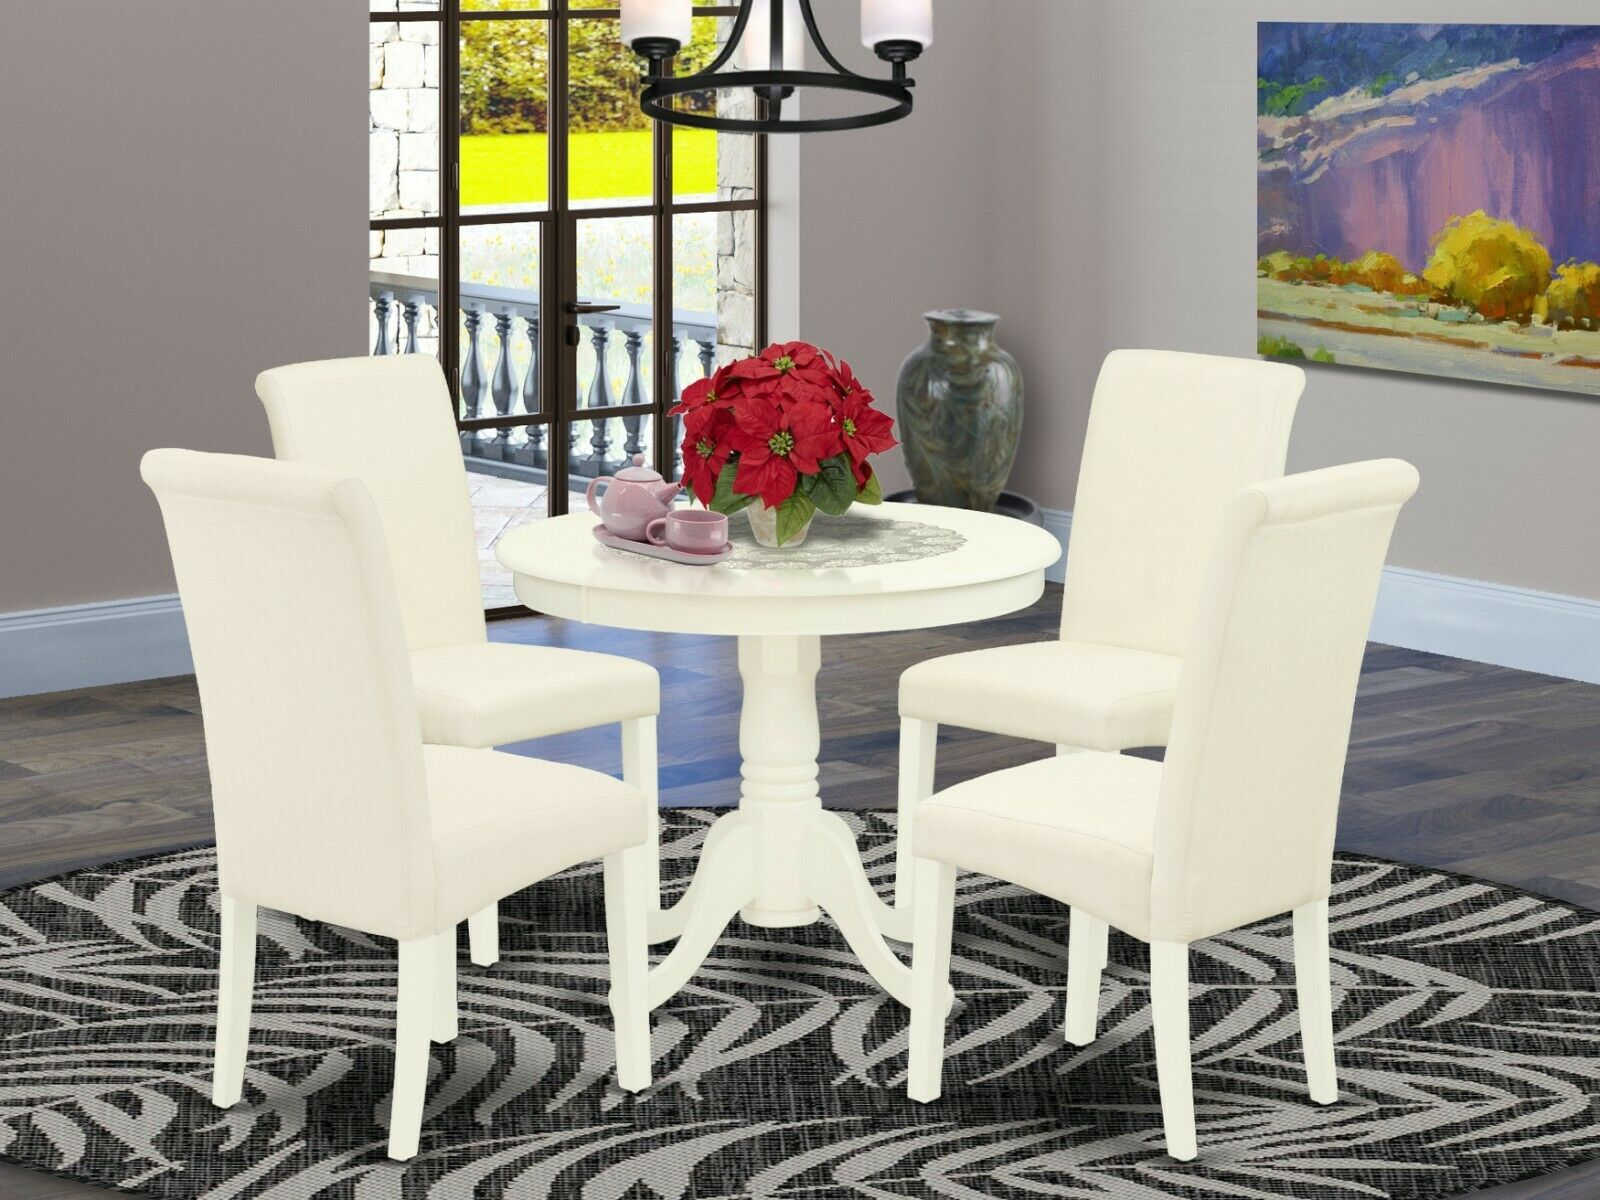 Retro Dining Set Chrome White Round Table Red Chairs Kitchen Dinette Furniture For Sale Online Ebay